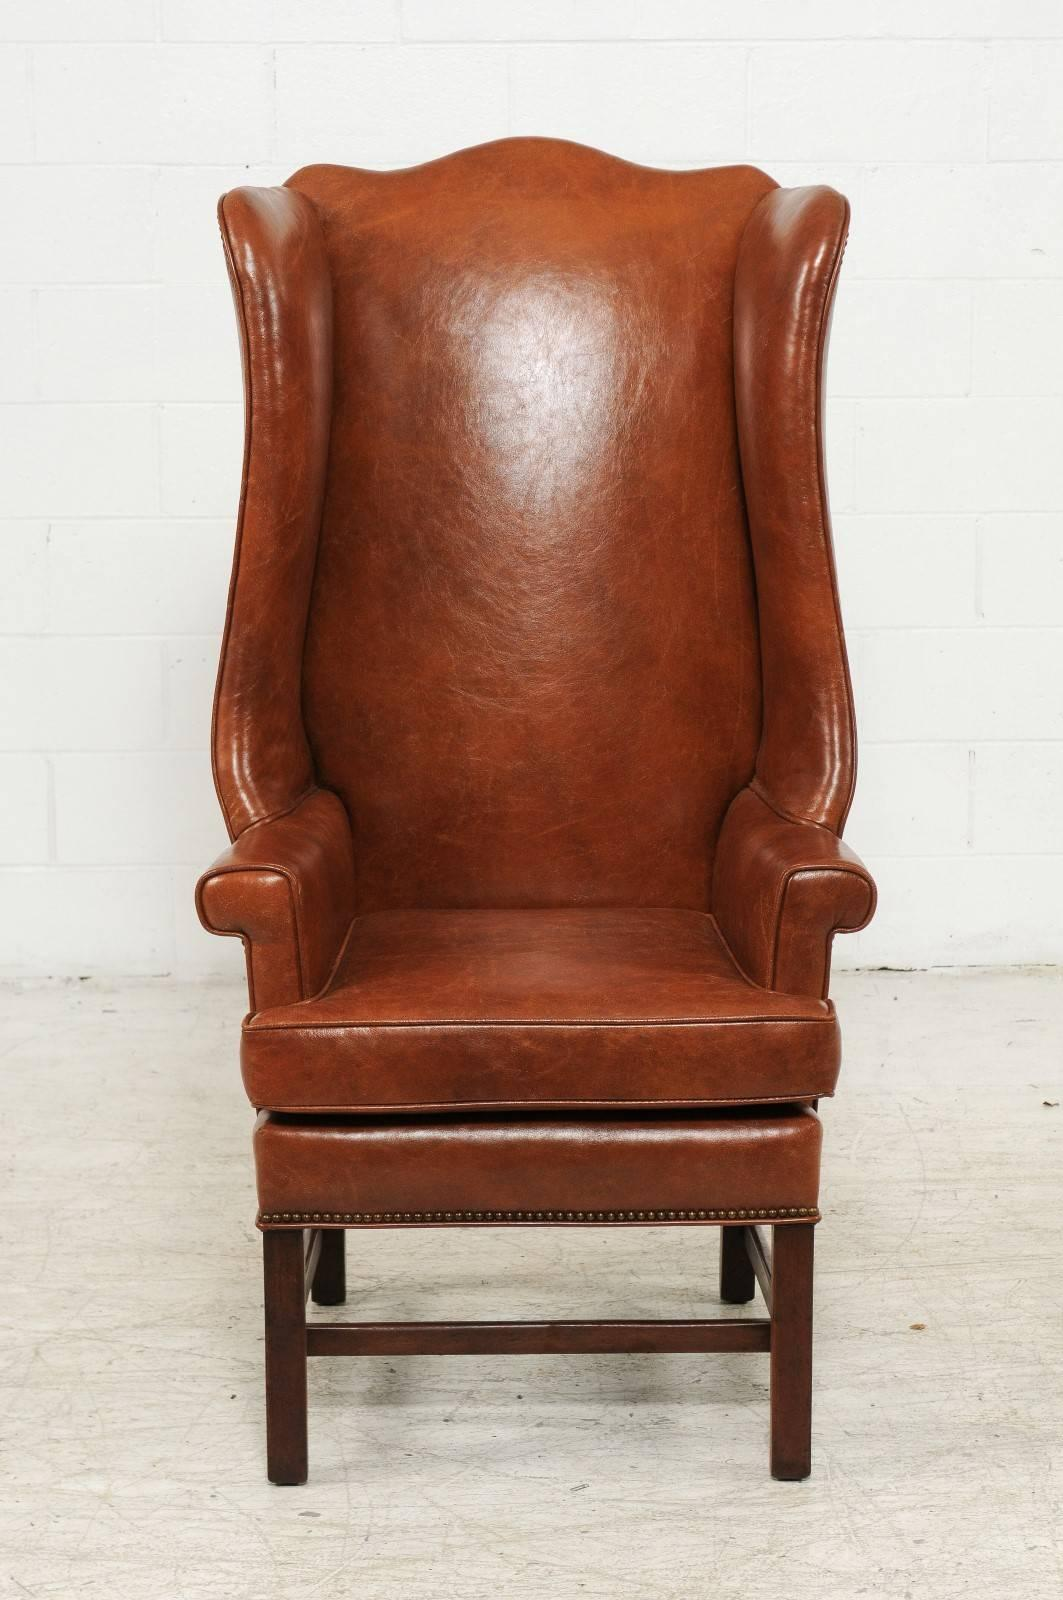 Brown Leather Wingback Chair Vintage English Midcentury Brown Leather Wingback Chair With Brass Nailhead Trim